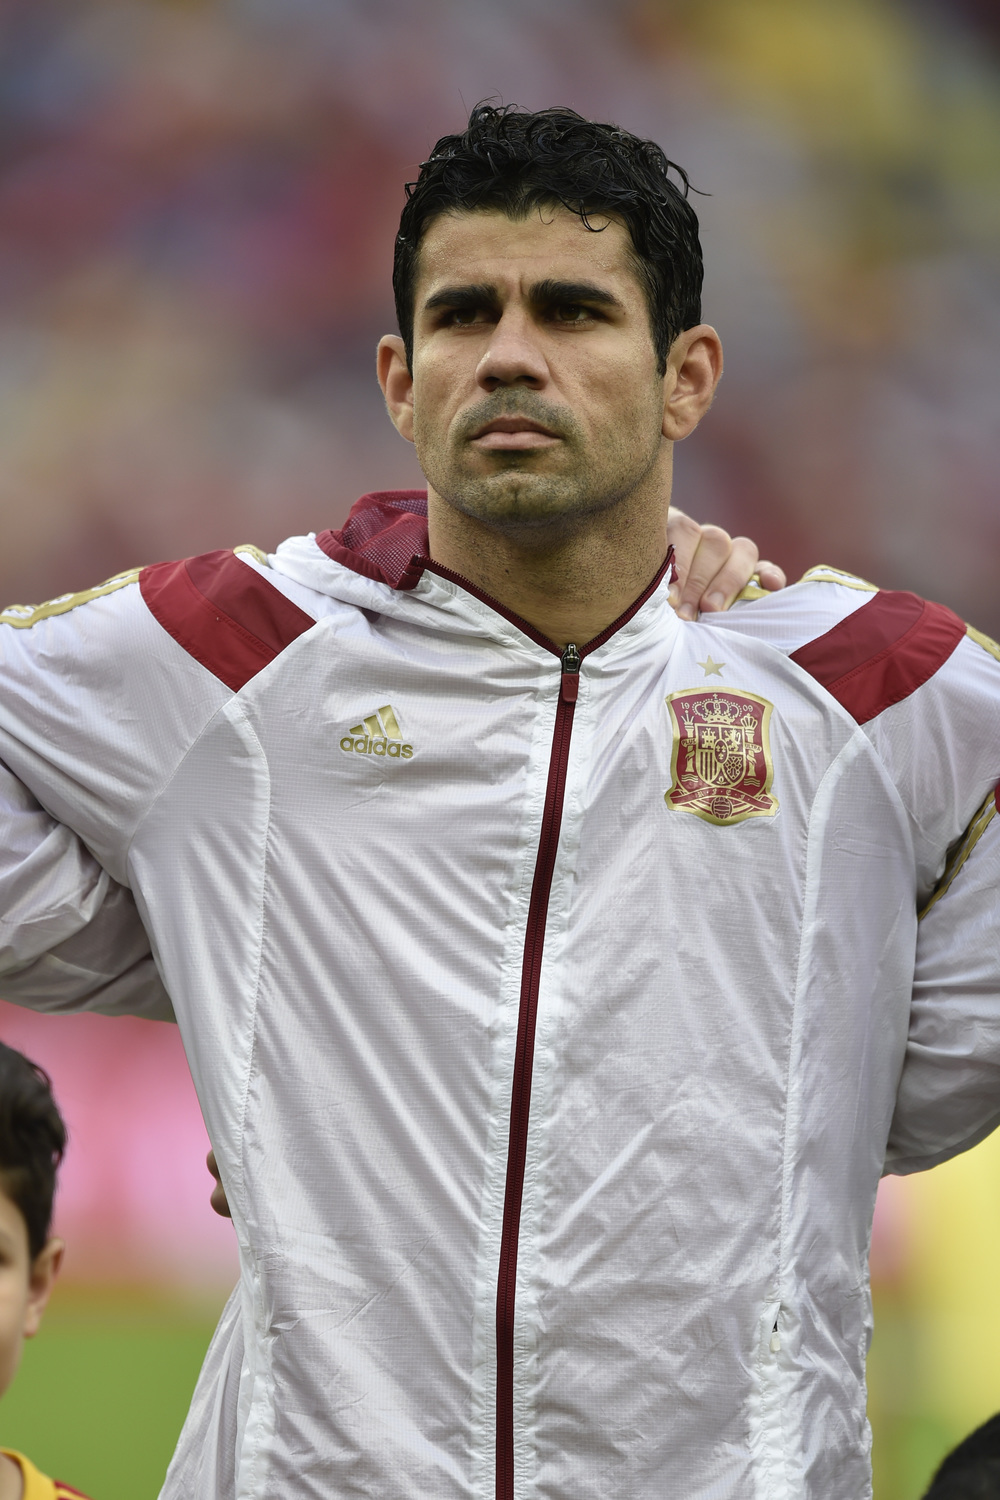 Diego Costa has struggled to find success at the international level since joining La Roja in for the 2014 FIFA World Cup.  Photo credit Celso Pupo / Shutterstock.com